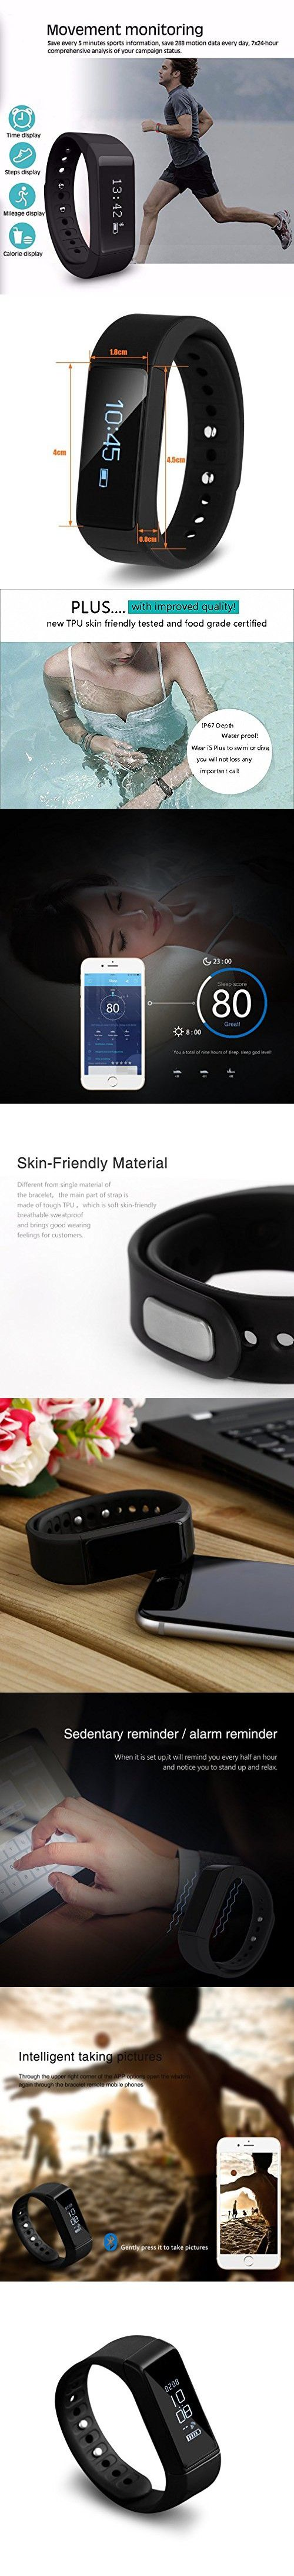 Activity Tracker LESHP I5 Plus Fitness Wristbands Tracker Waterproof Smart Bracelet Bluetooth 4.0 Wireless Activity Wristband for iPhone Android Phone